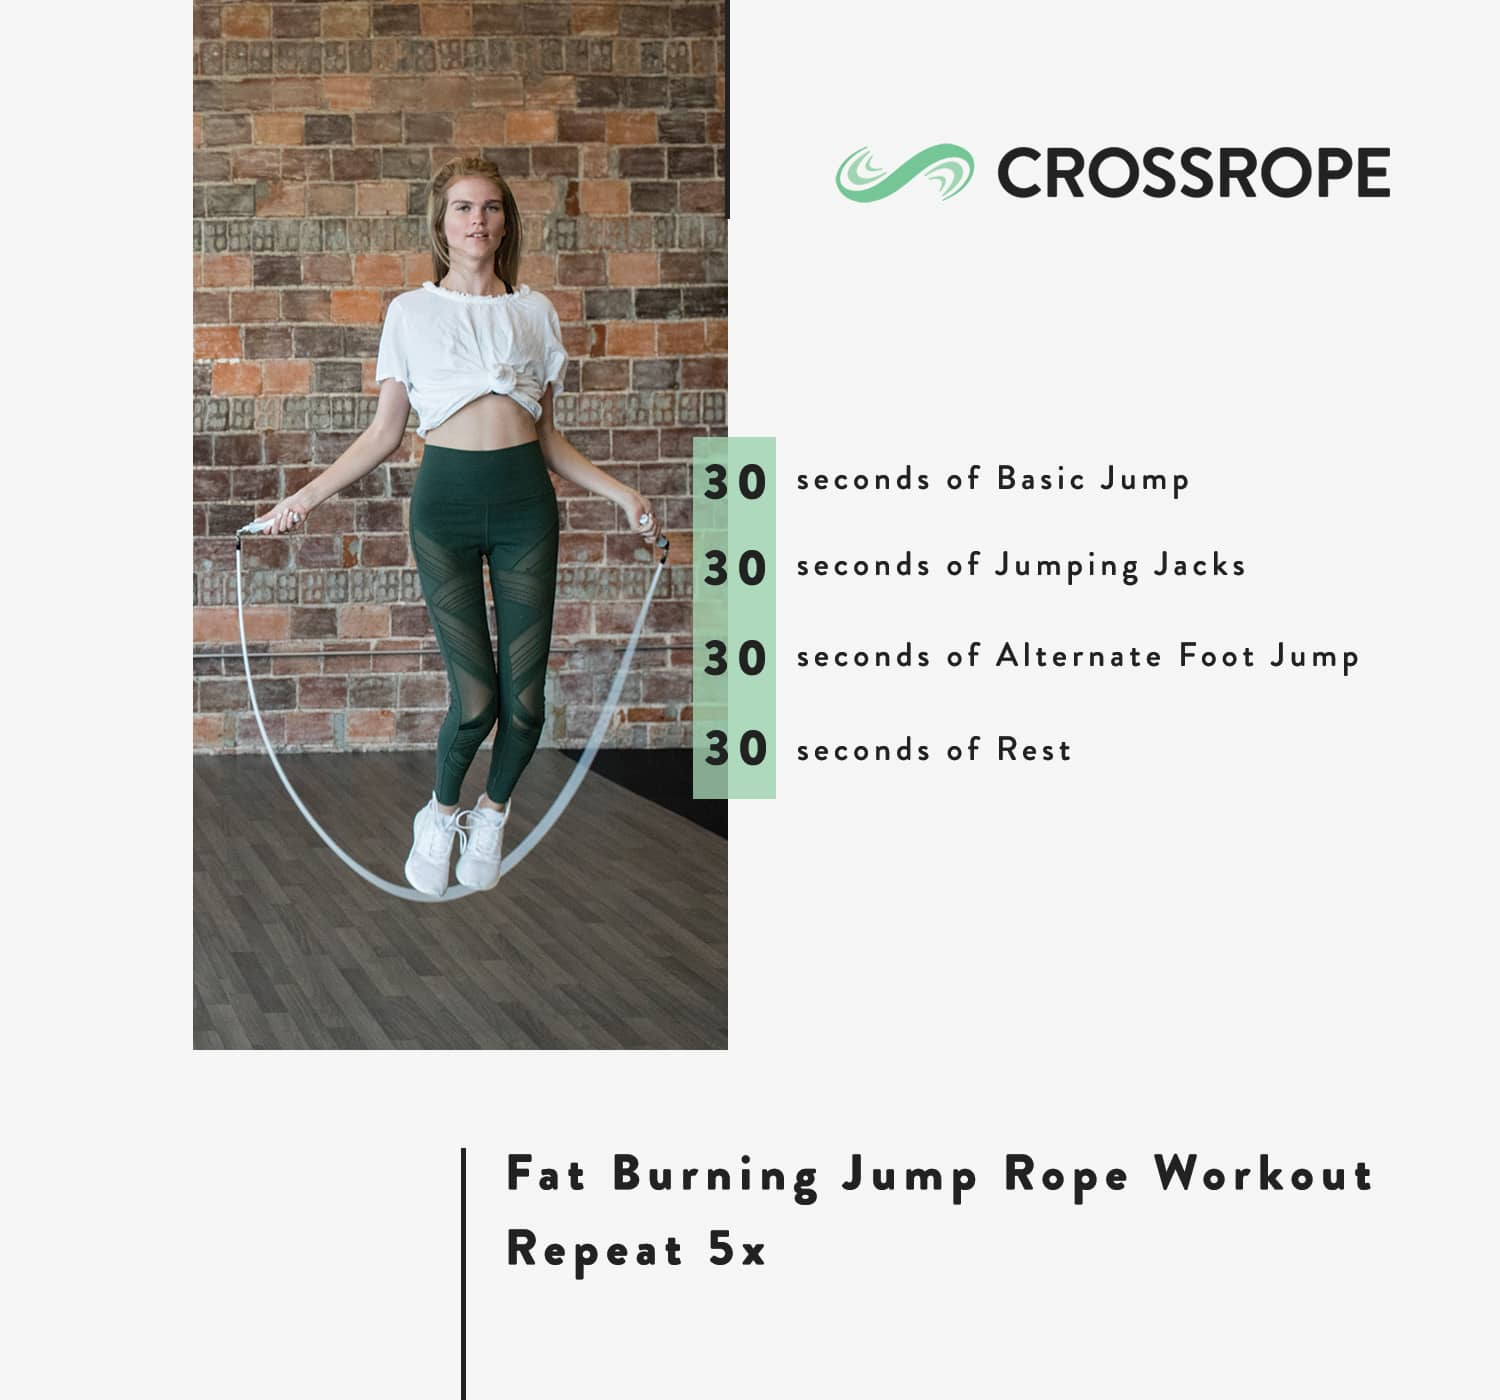 fat burning jump rope workout